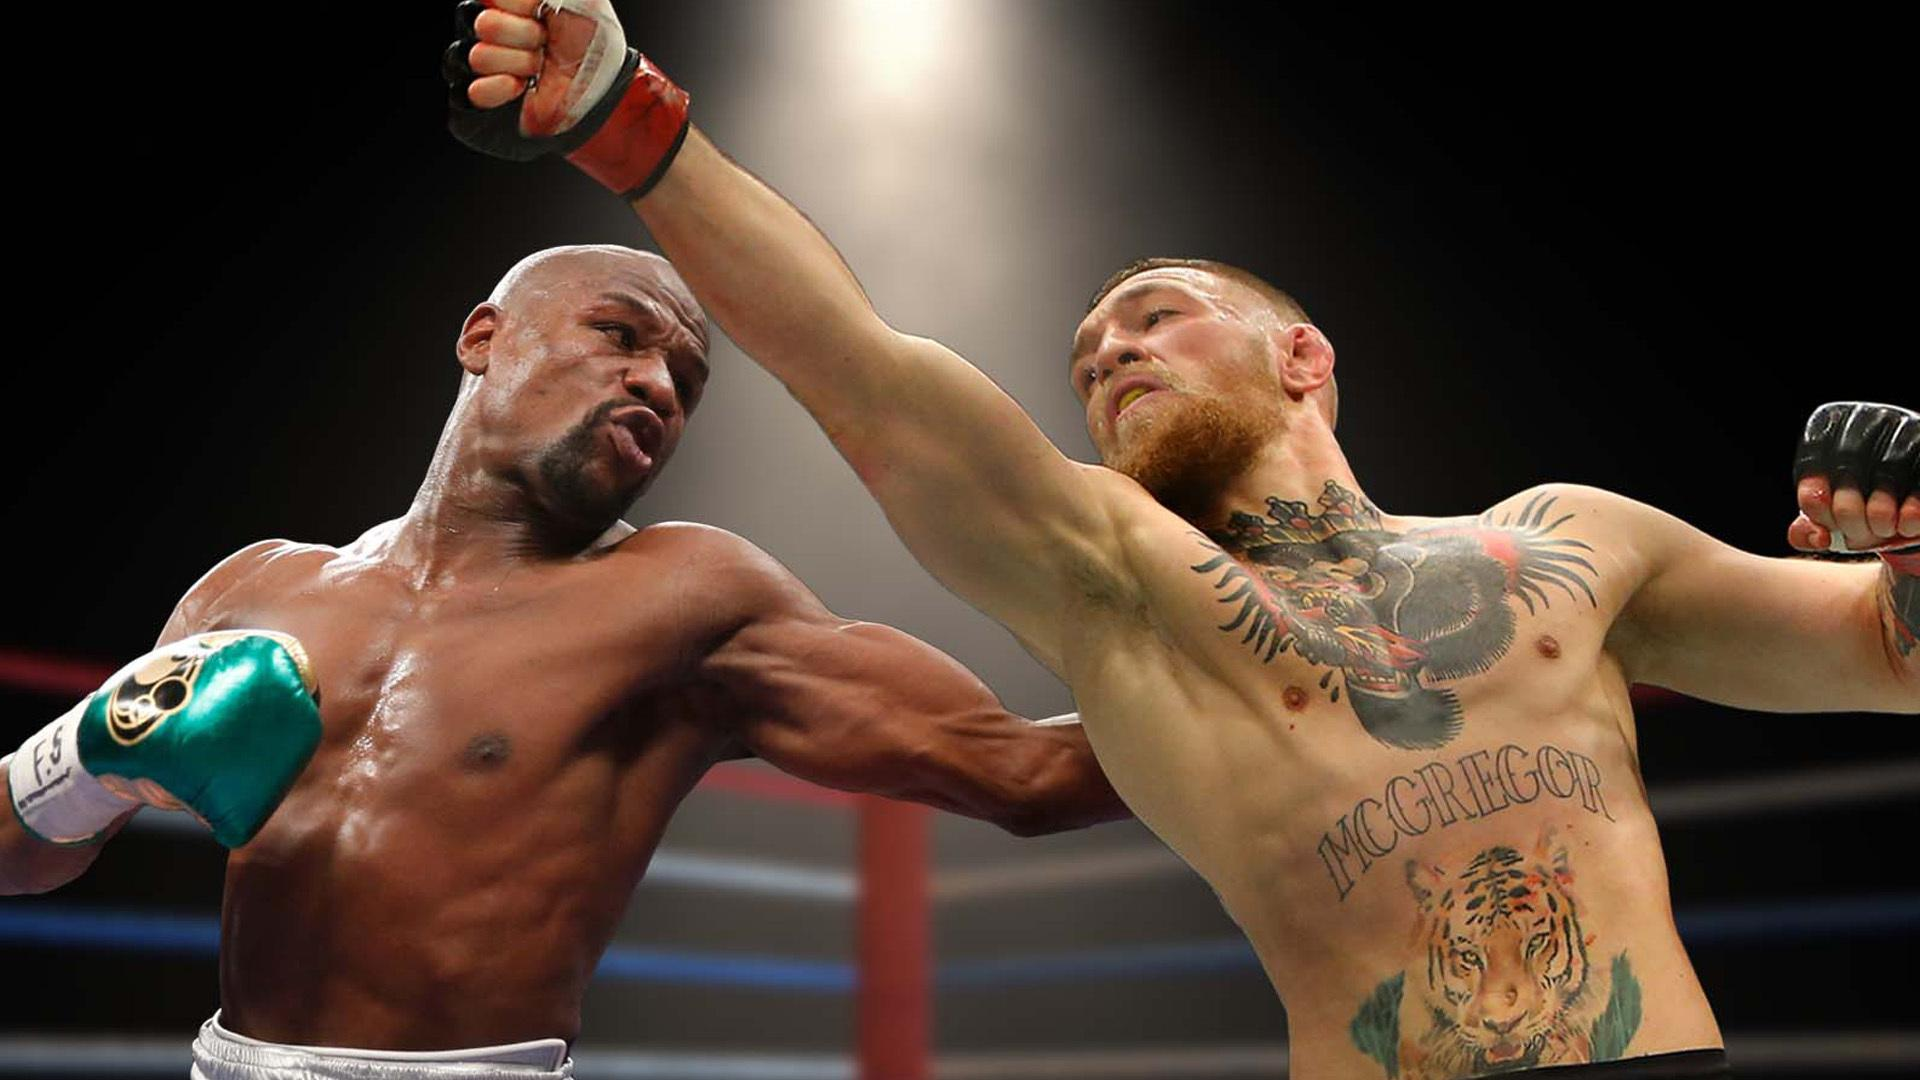 Floyd Mayweather Jr. & Conor McGregor Will Fight, Finalizing Deal For Boxing Match